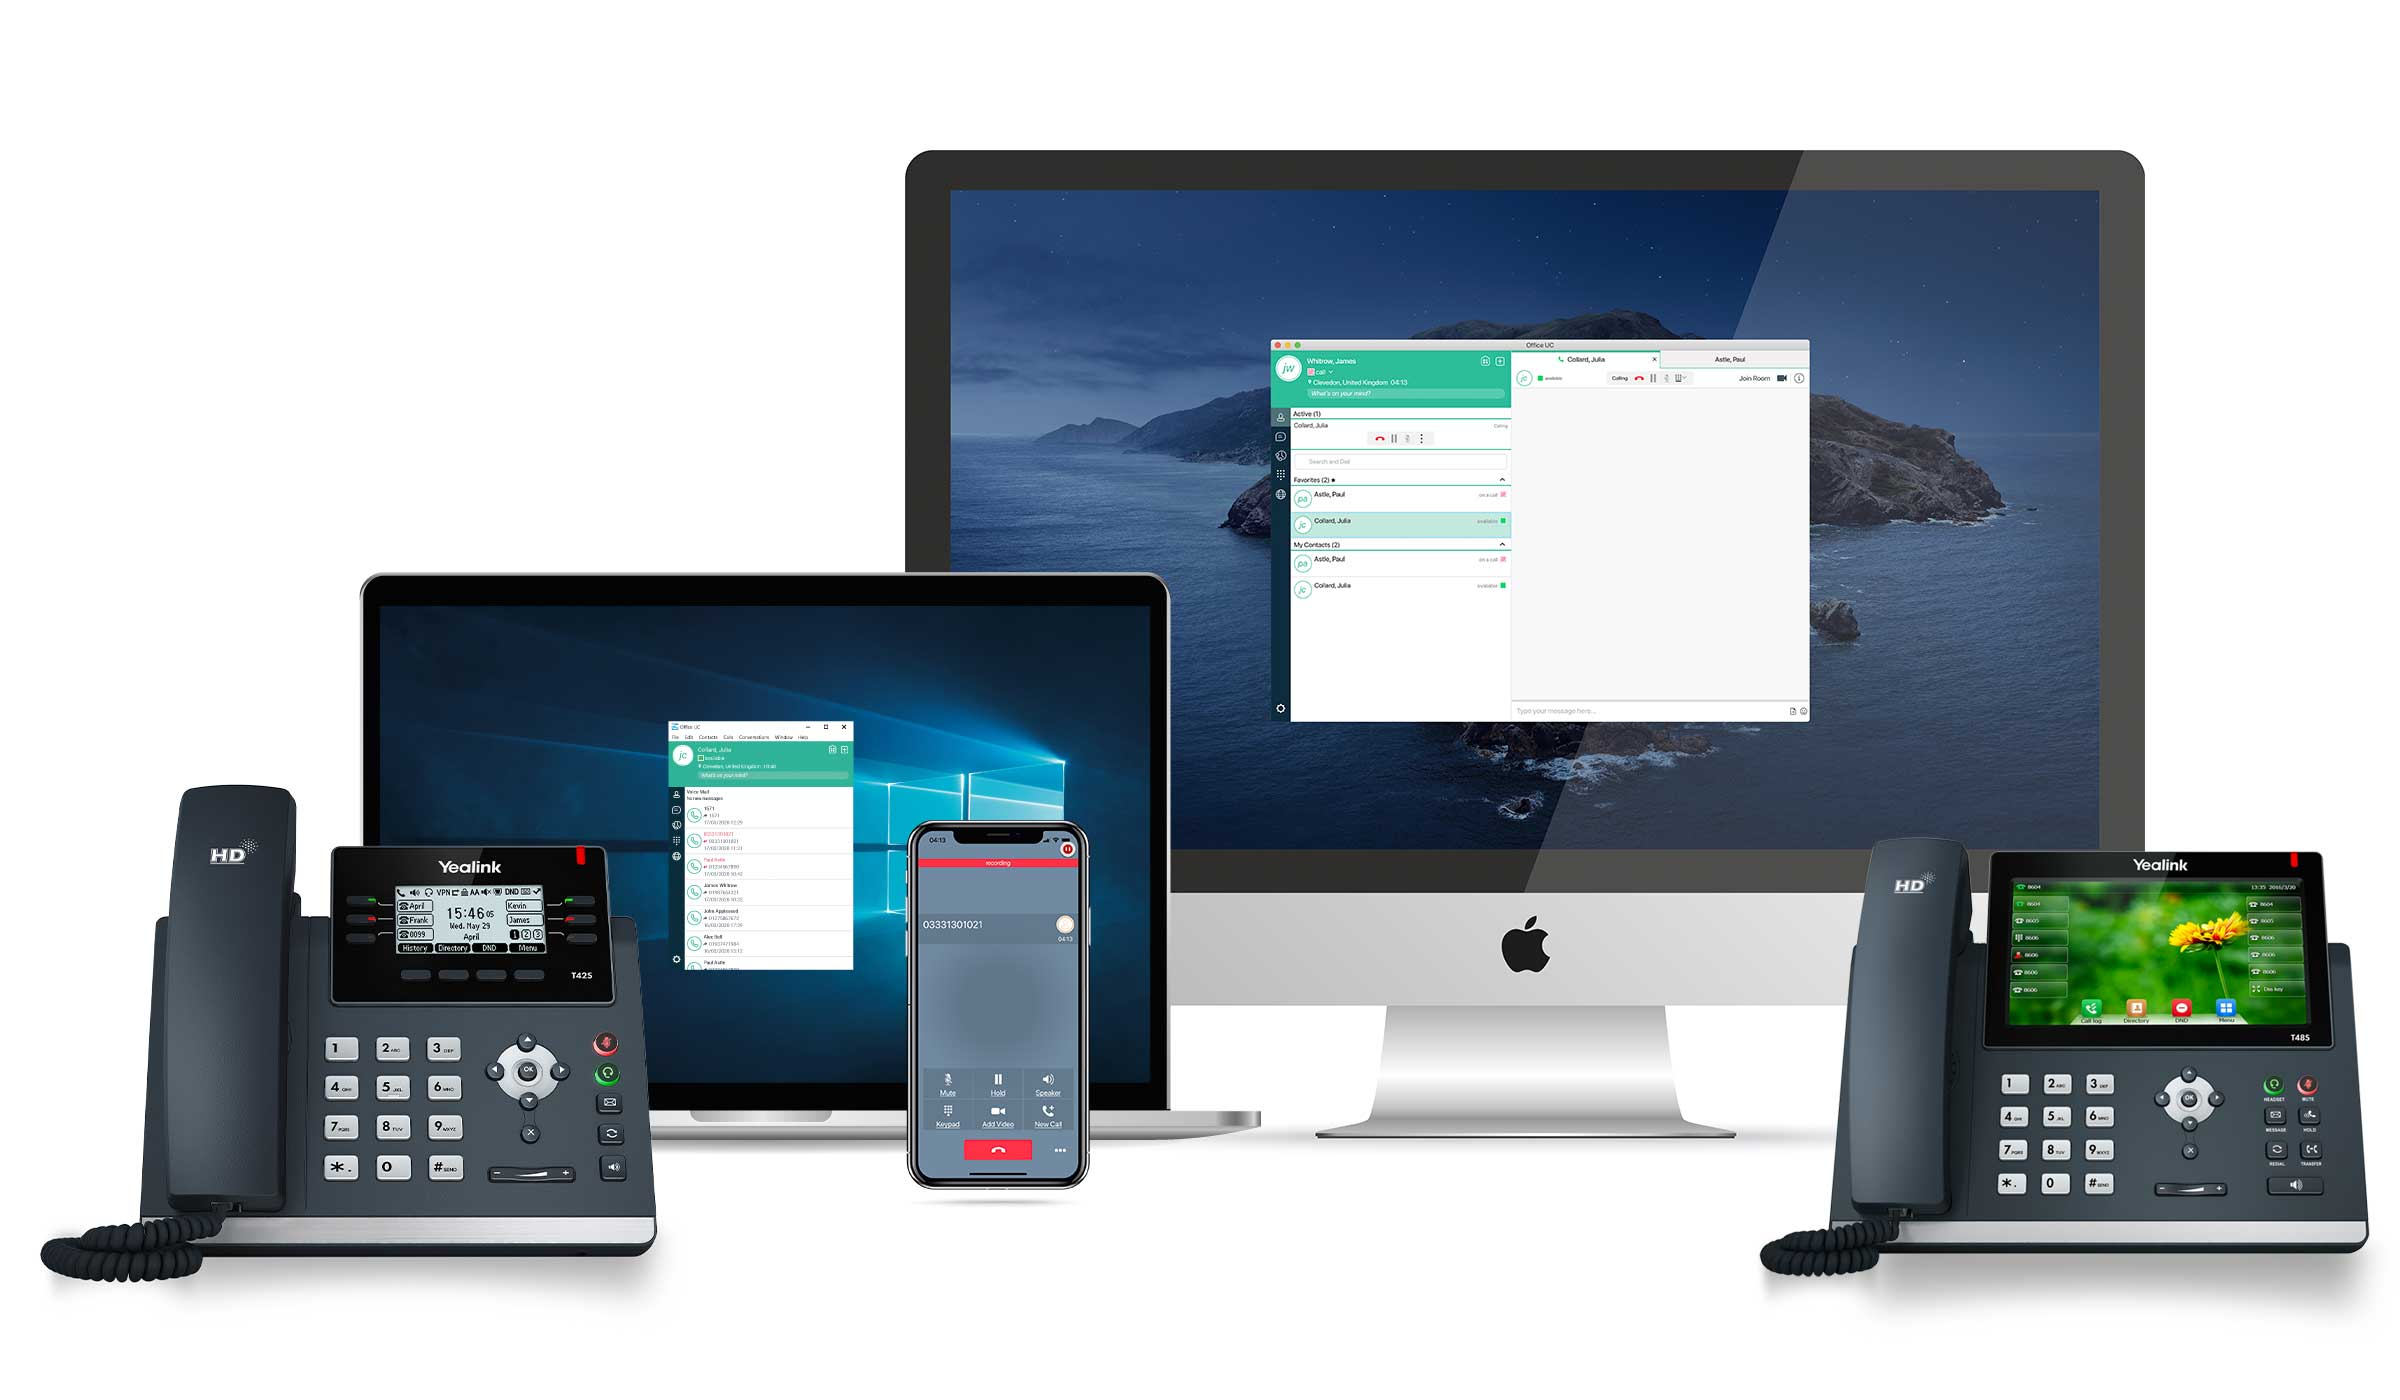 VoIP Devices